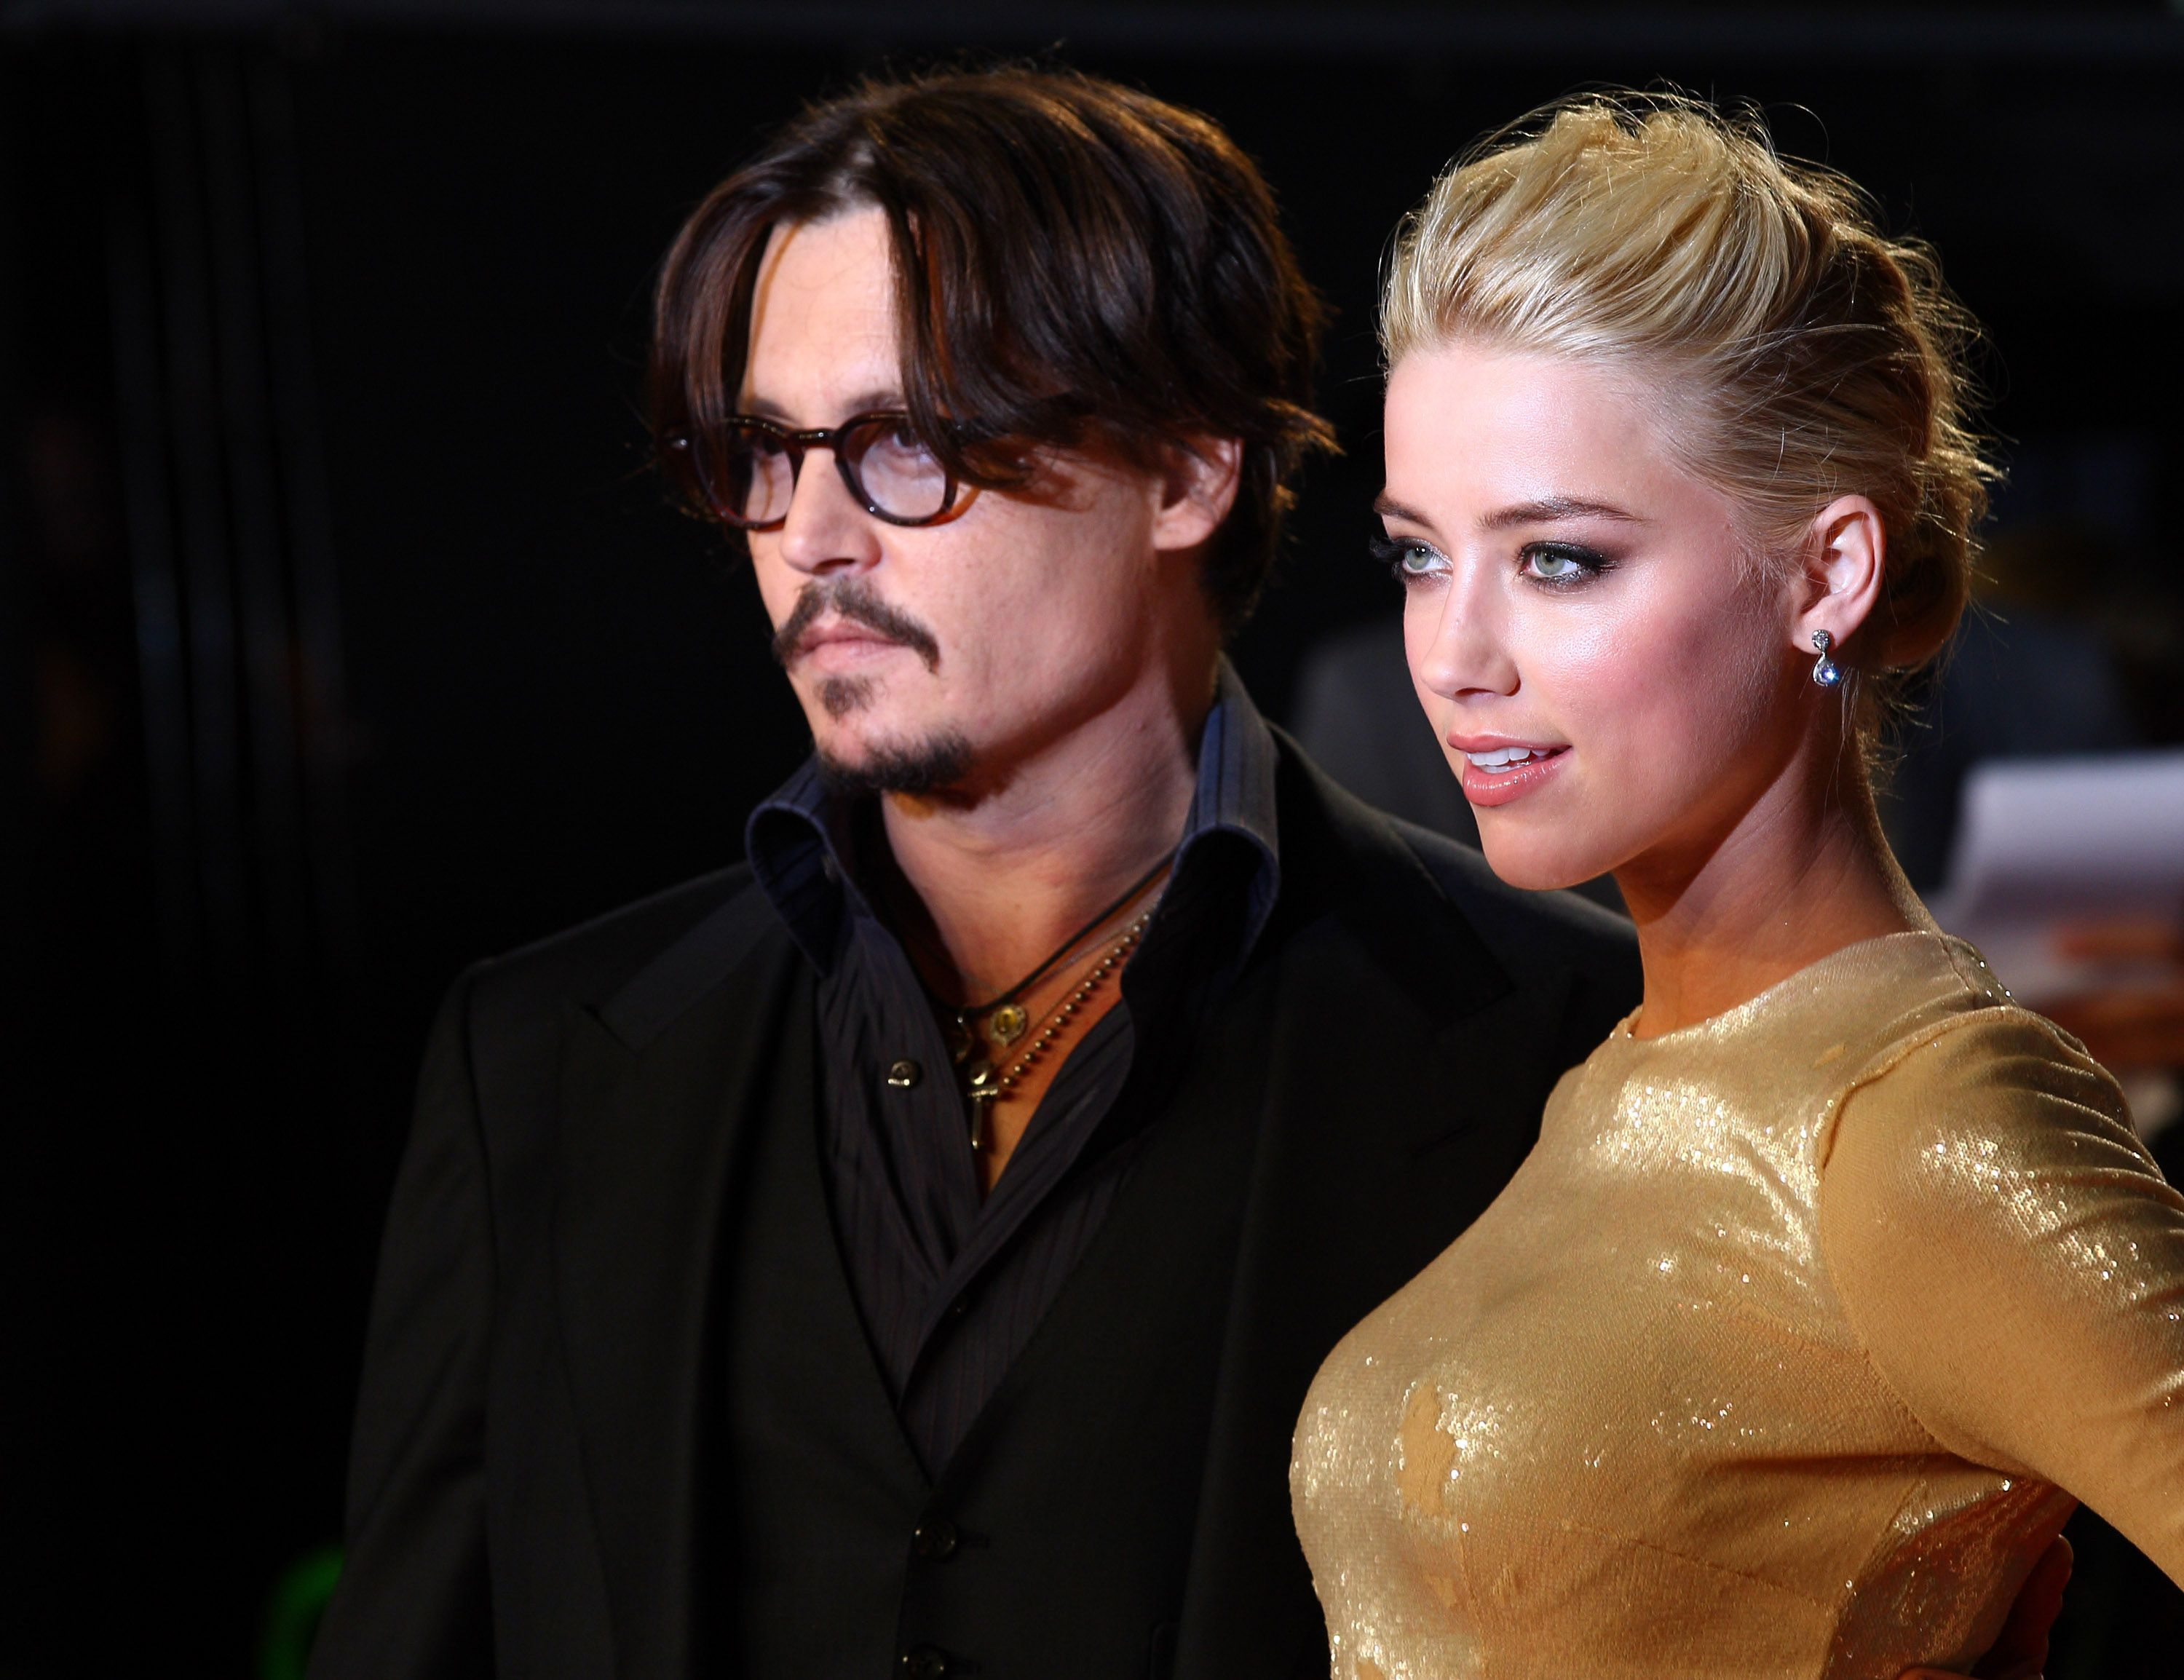 Johnny Depp and Amber Heard had a scandalous divorce / Getty Images